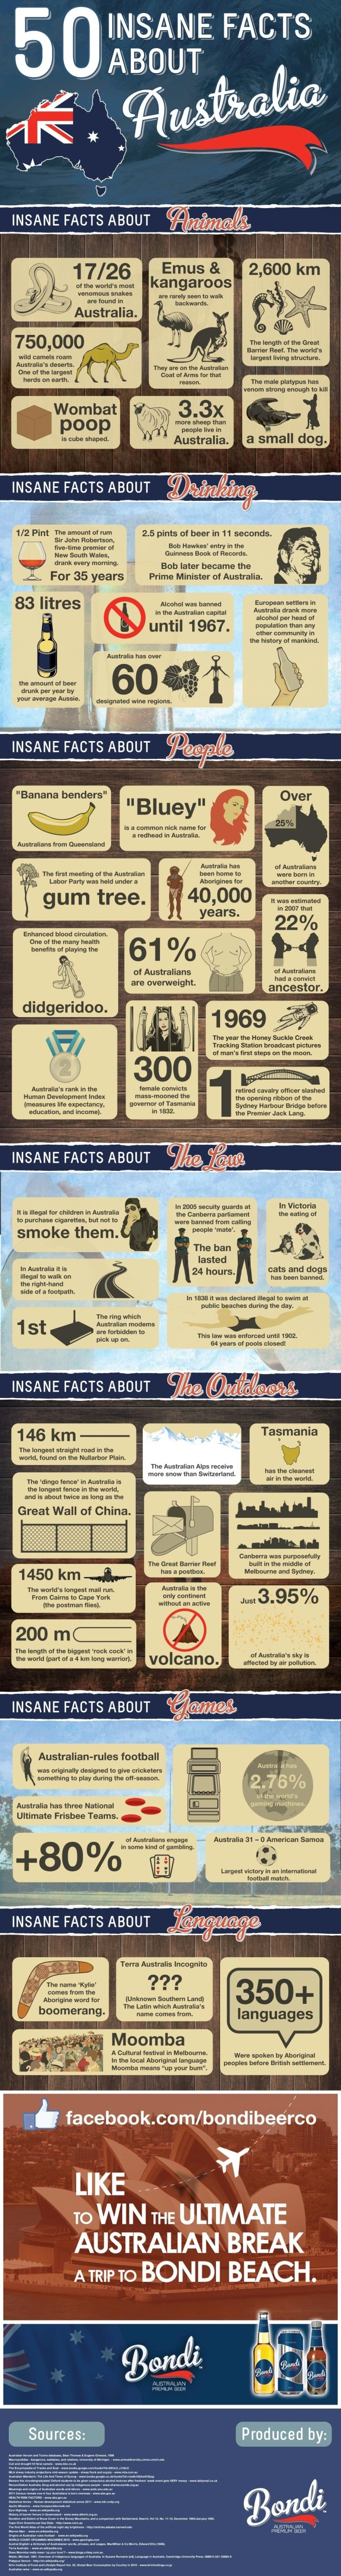 50-insane-facts-about-Australia4_thumb.jpg